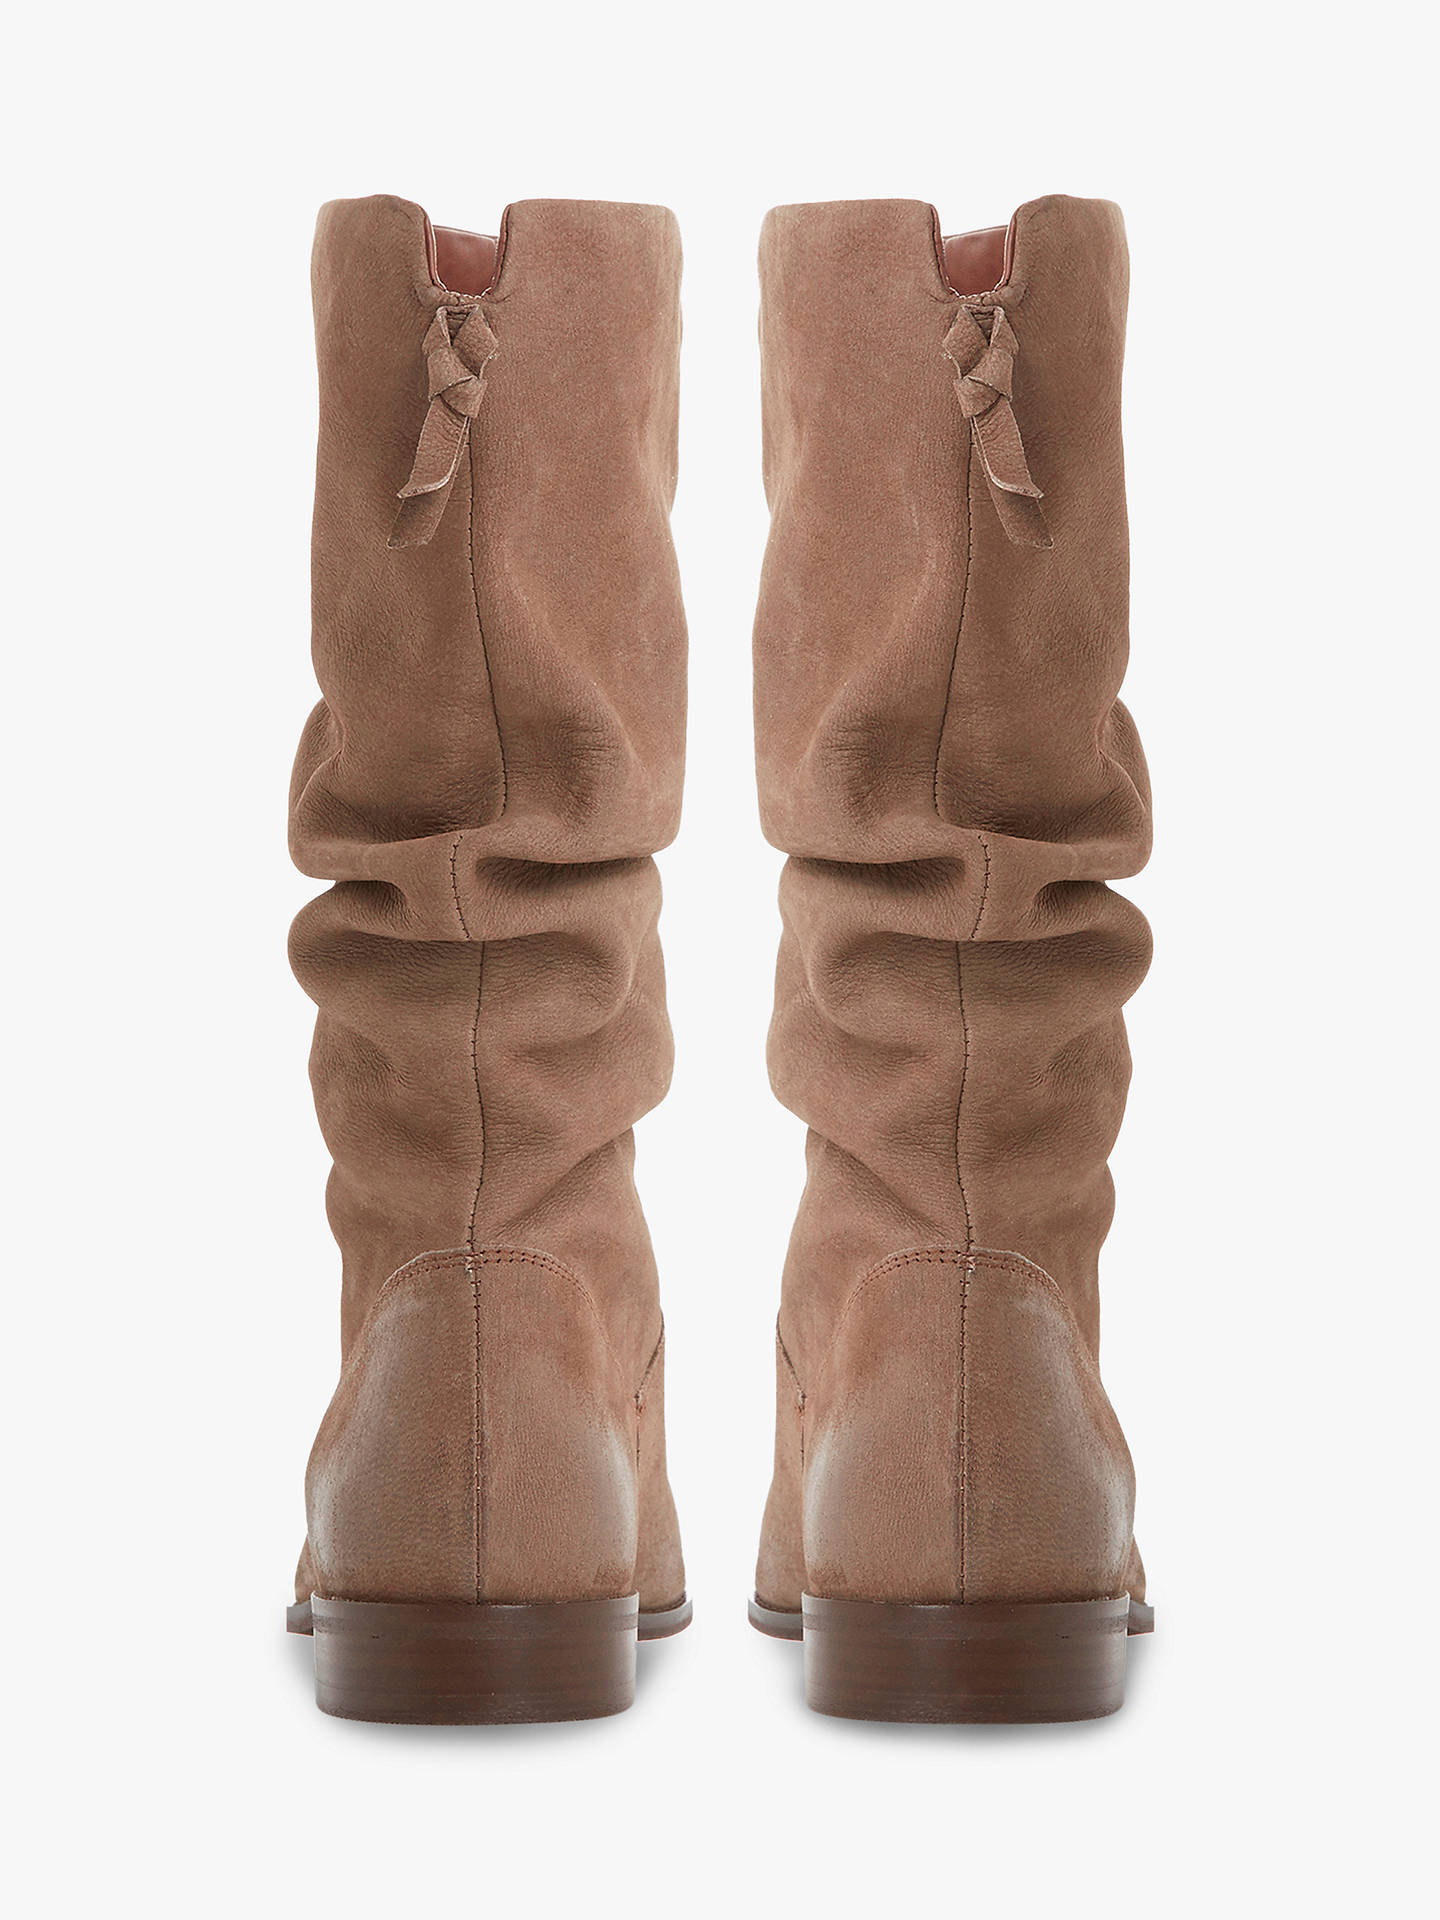 ffd4256b3c8 Dune Rosalindd Calf Boots, Taupe Leather at John Lewis & Partners